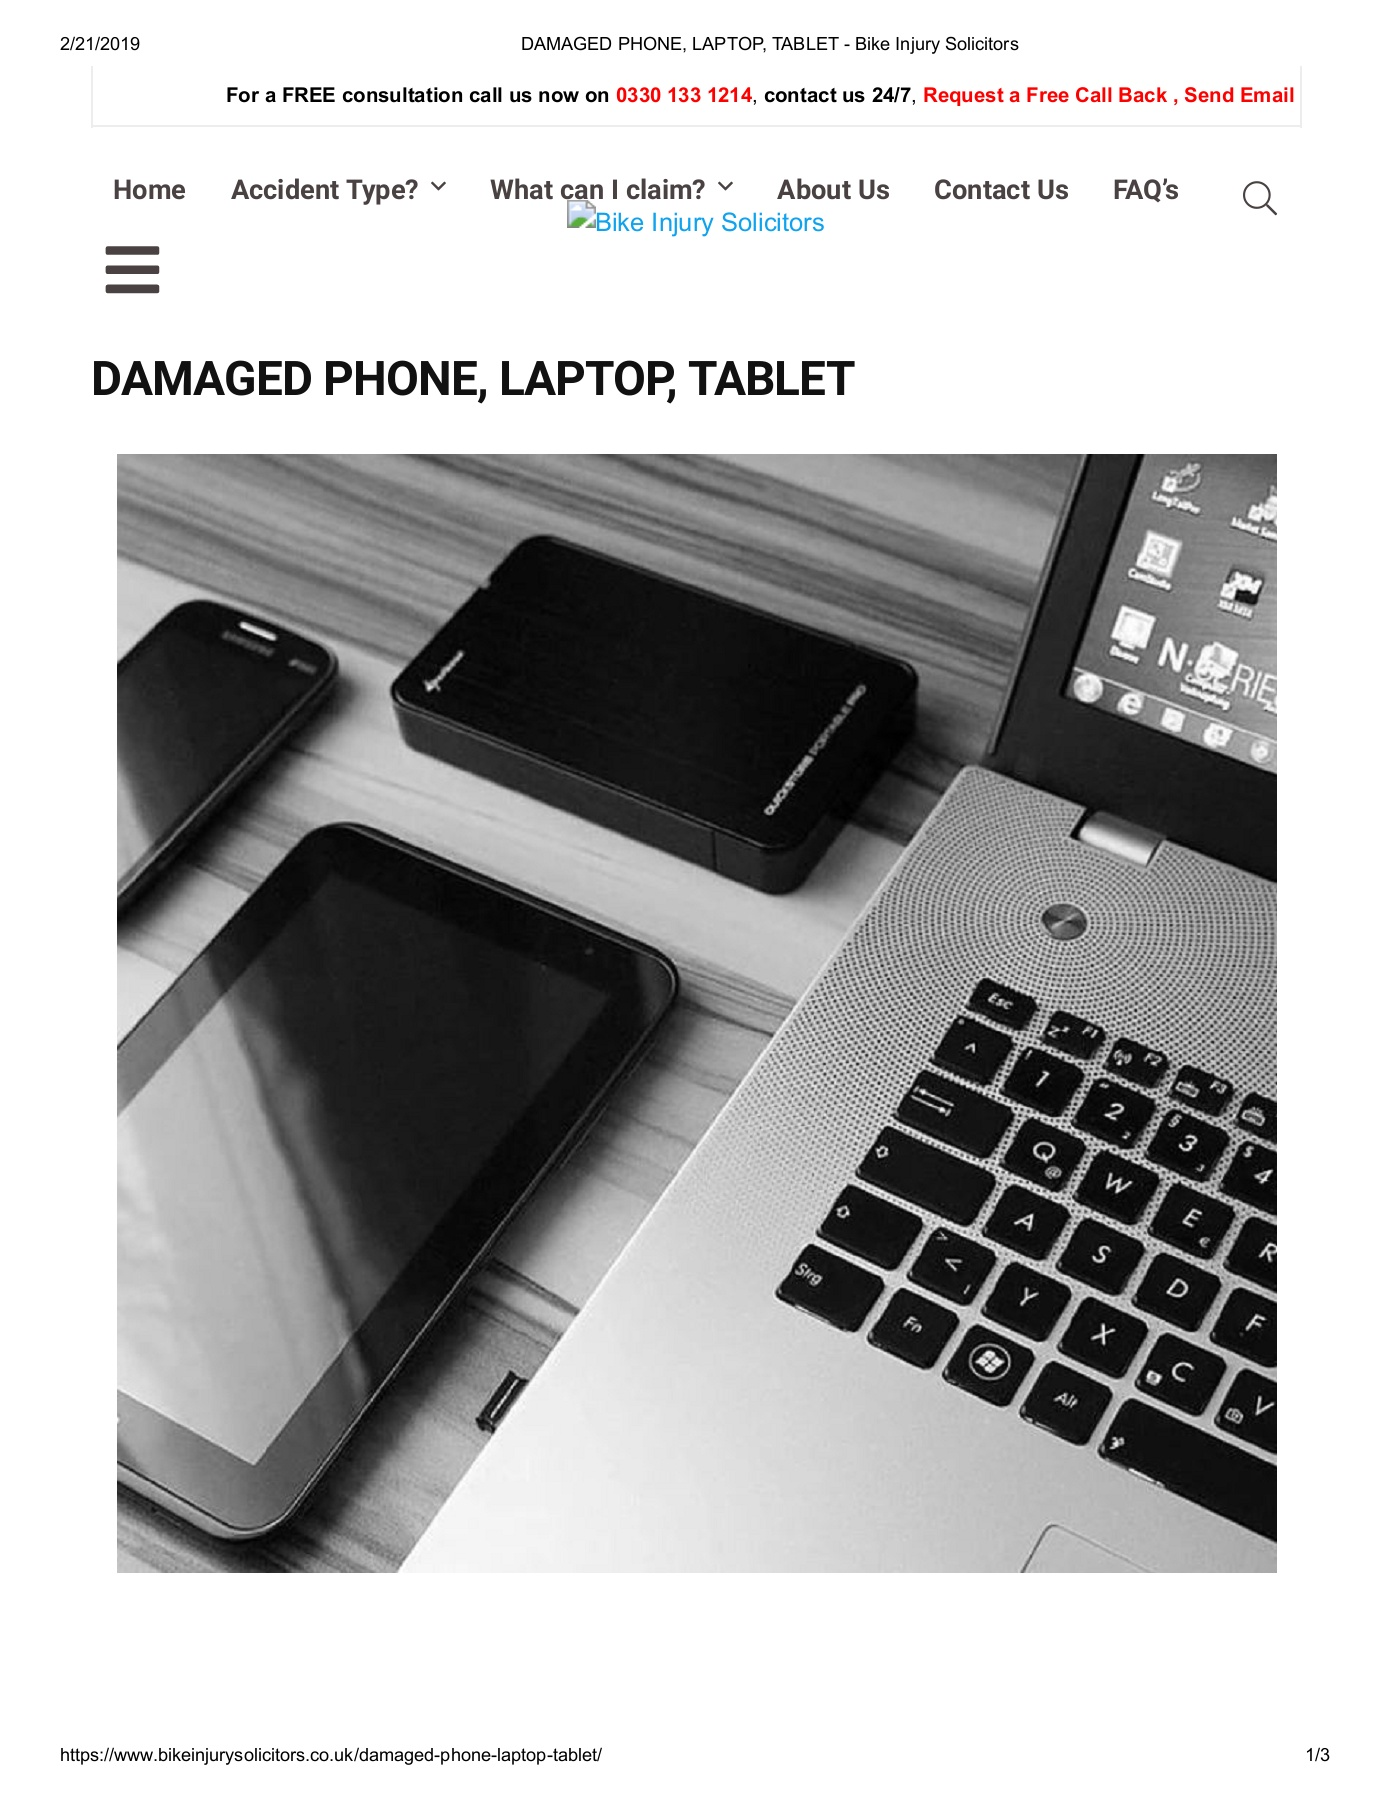 DAMAGED PHONE, LAPTOP, TABLET - Bike Injury Solicitors Pages